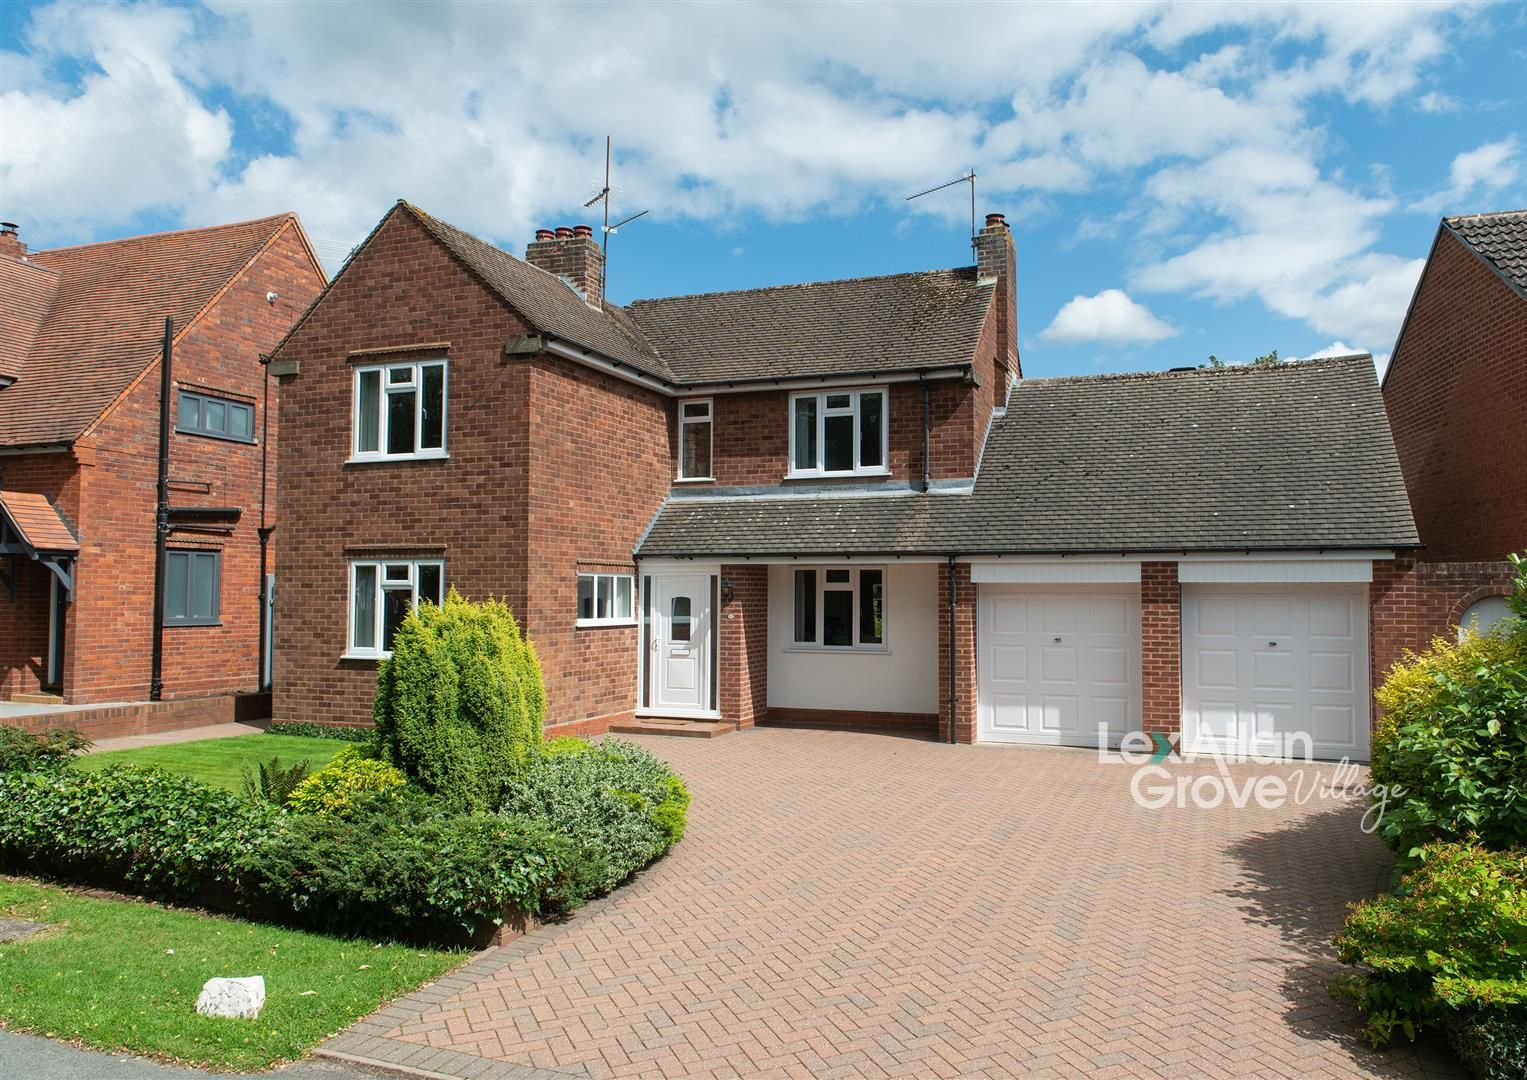 3 bed detached for sale in Hagley, DY9